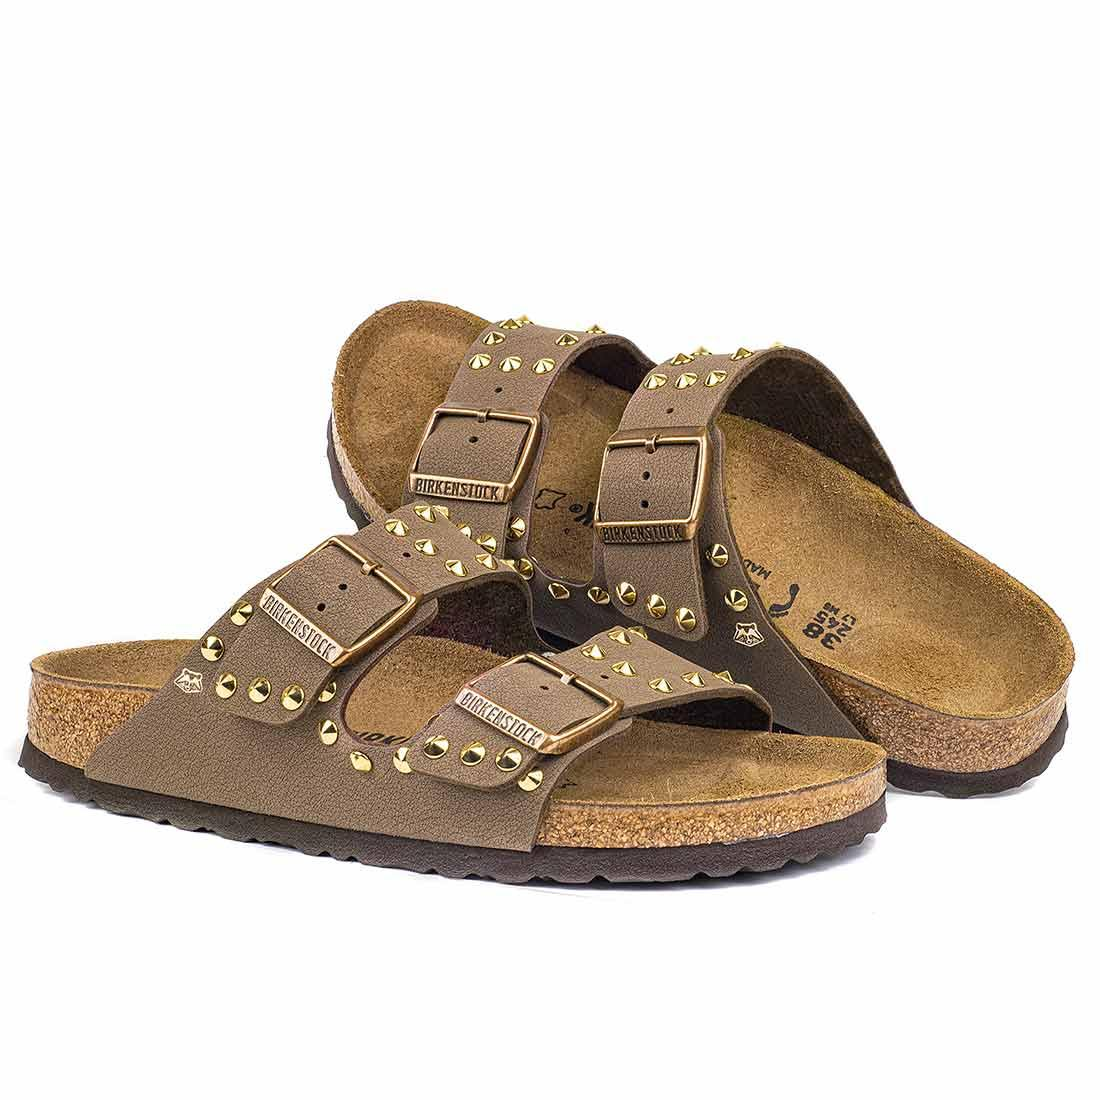 Sandali borchiati Birkenstock arizona colore marrone mocha